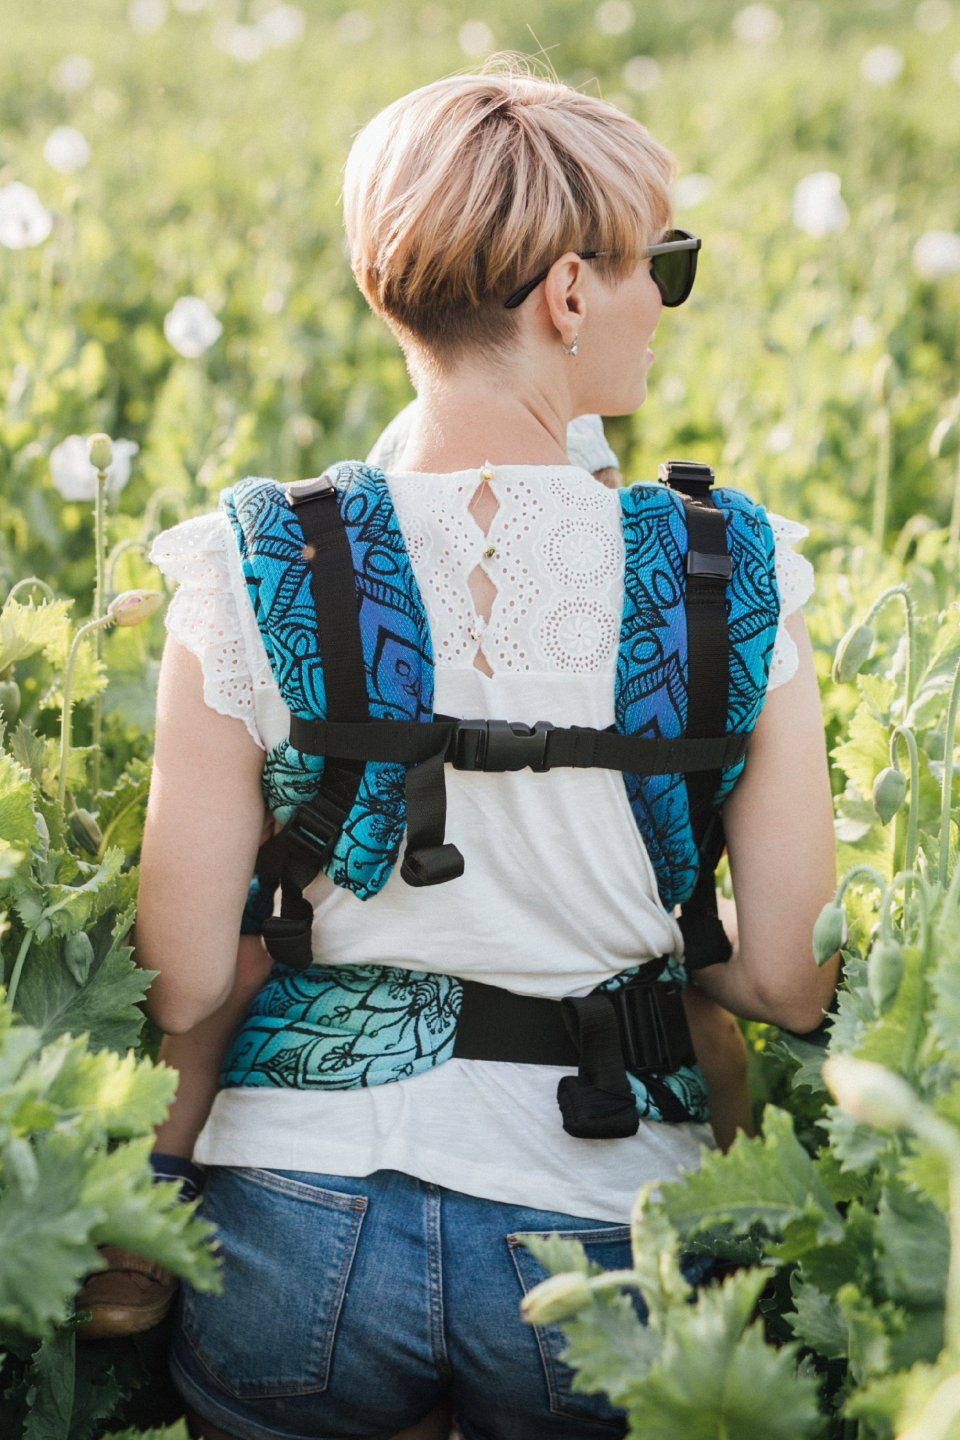 Baby Carrier - Be Lenka 4ever Mandala - Polar Day